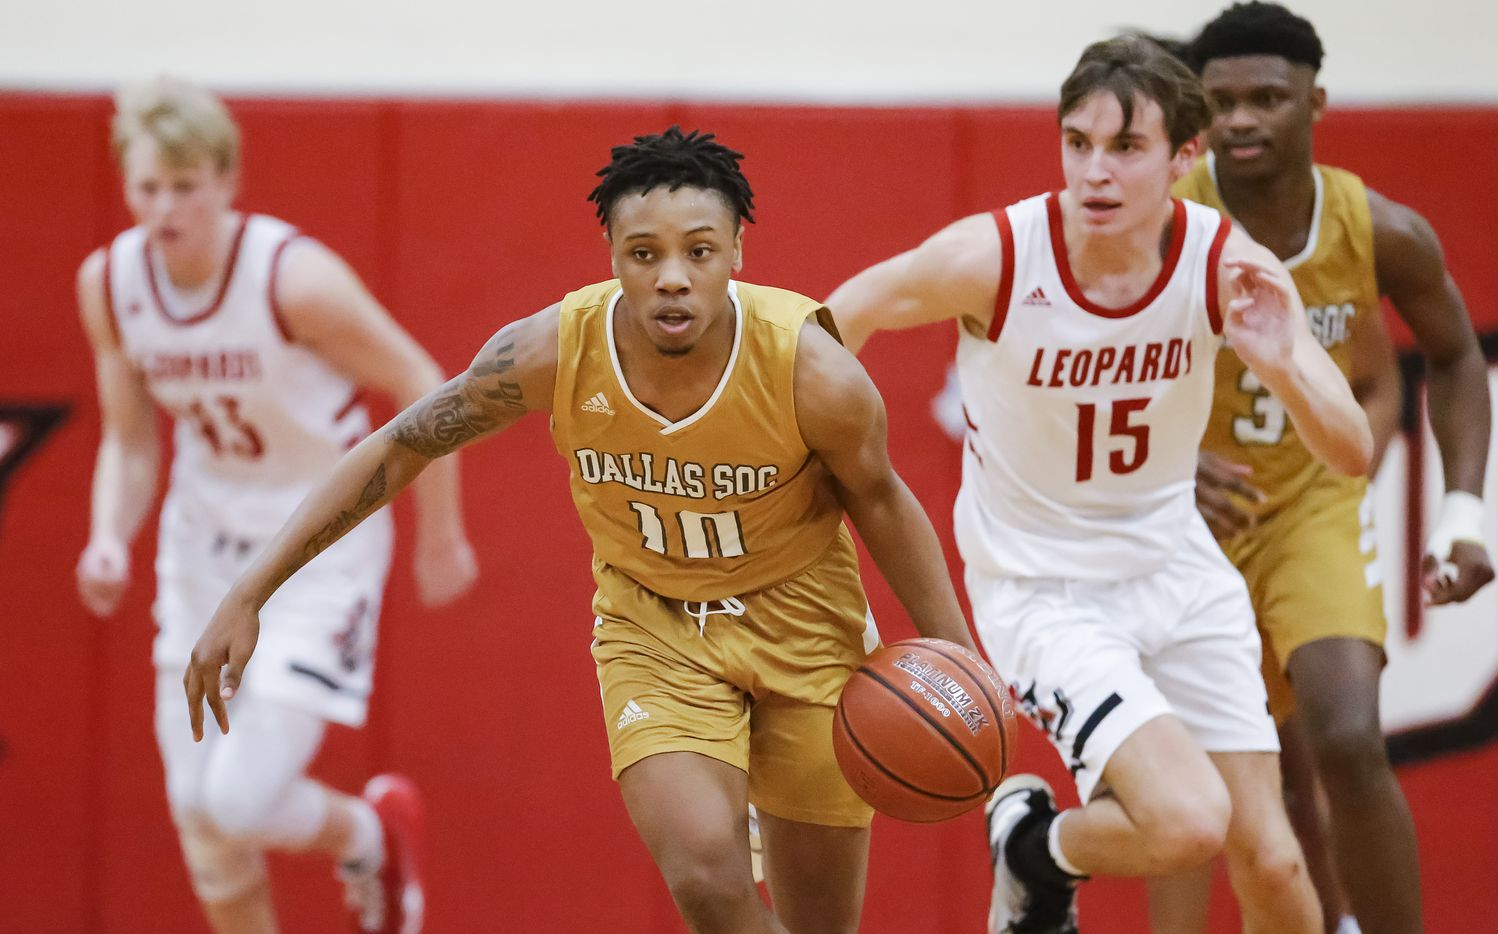 South Oak Cliff senior guard drives up the court during the first half of a Class 5A area-round playoff basketball game against Lovejoy at Lake Highlands High School in Dallas, Wednesday, February 24, 2021. South oak Cliff won 46-44. (Brandon Wade/Special Contributor)